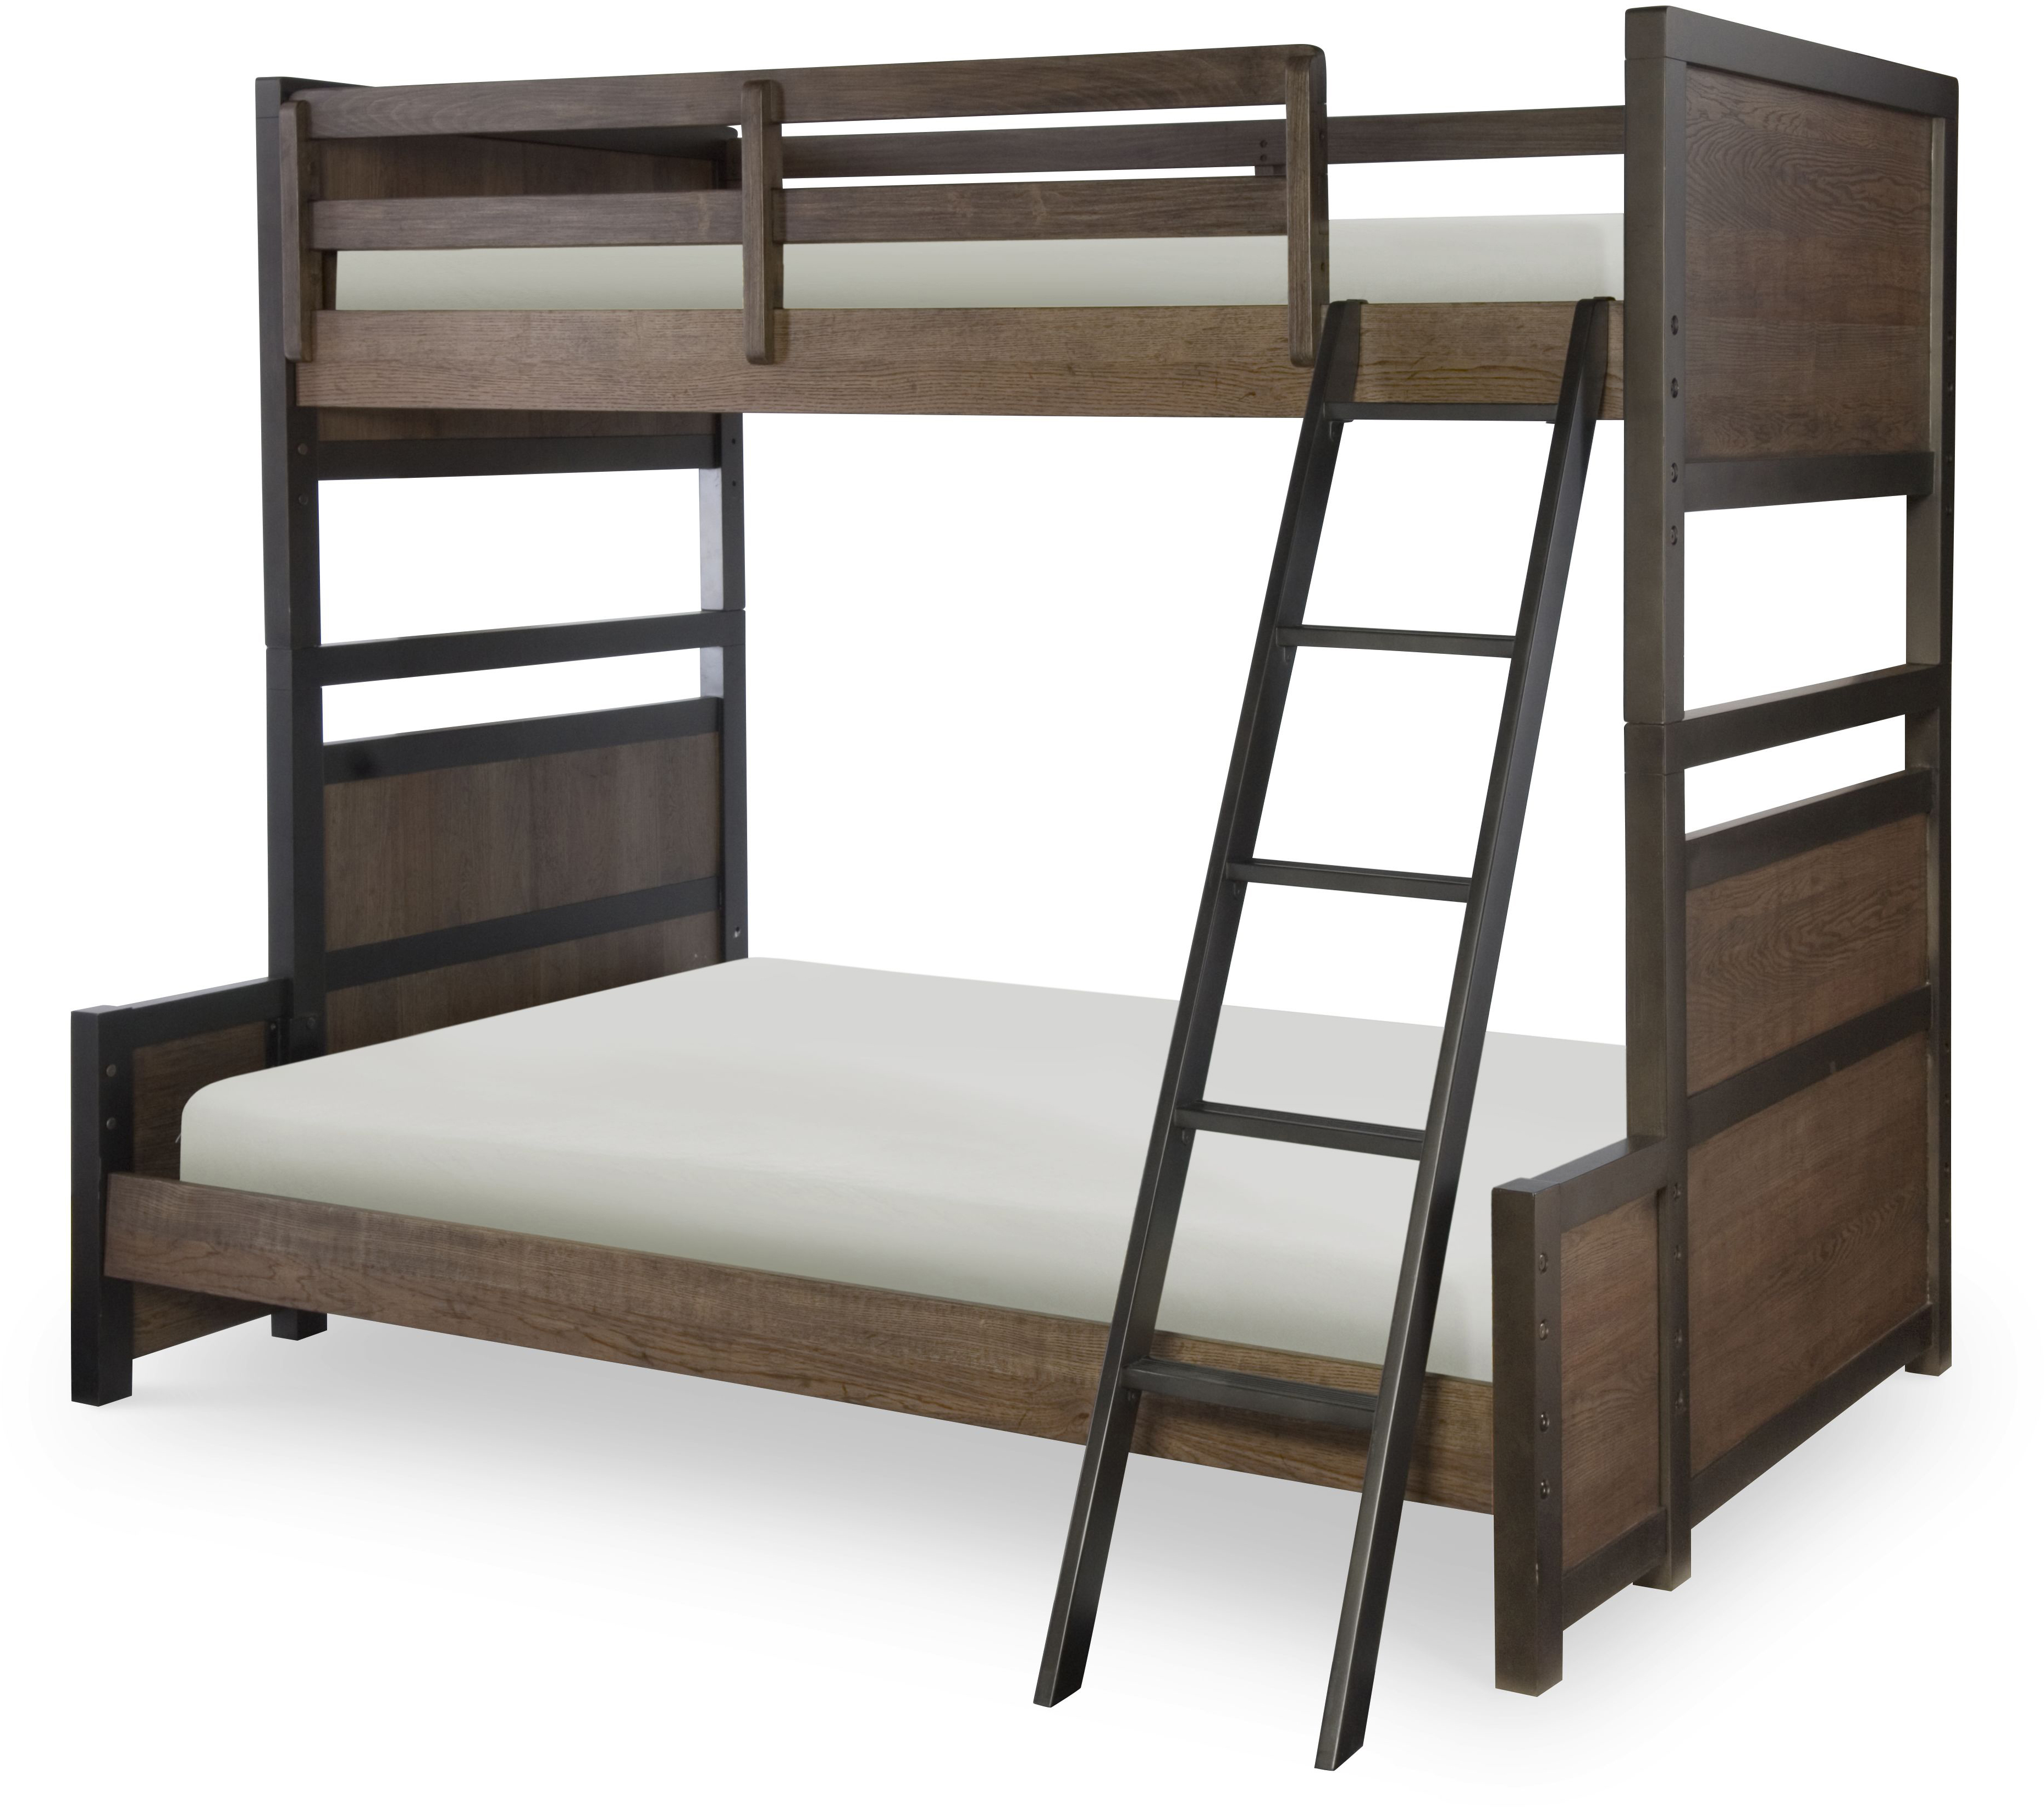 Legacy classic kids fulton county 5900 8140k twin over for Legacy classic bed